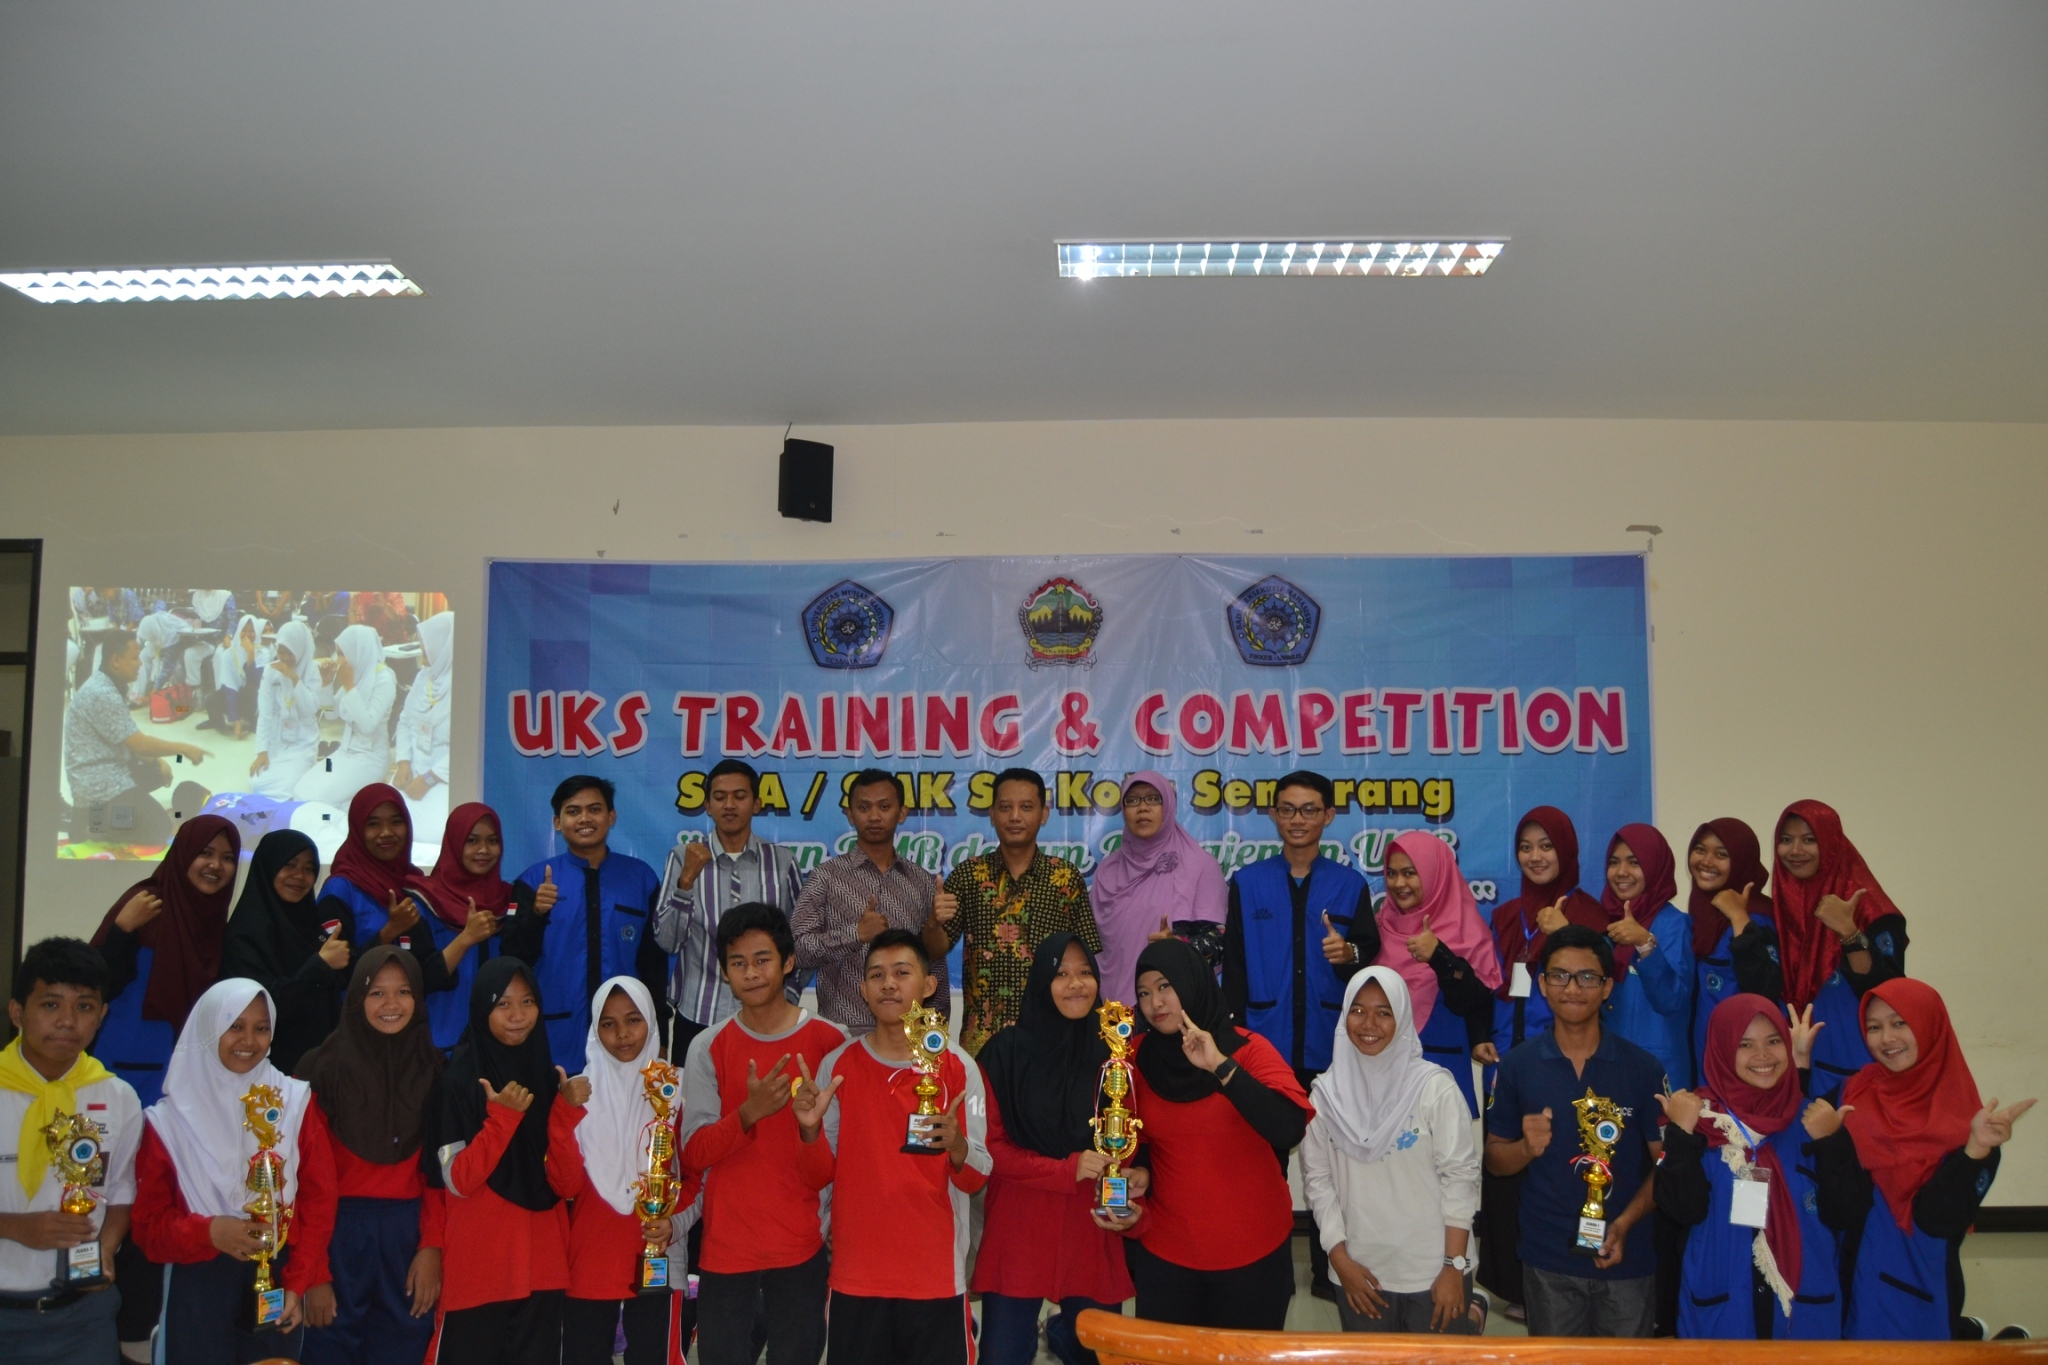 UKS Training and Competition